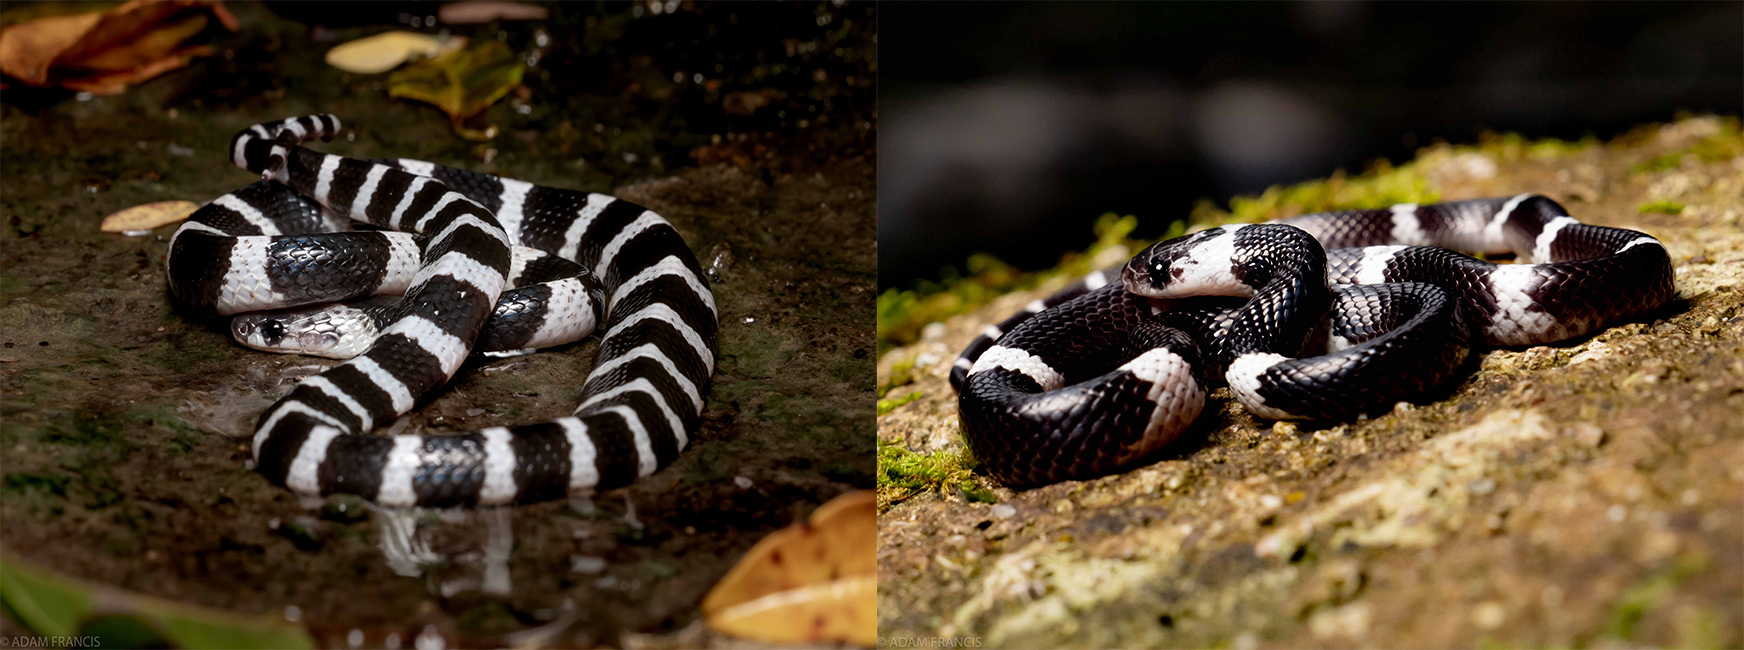 MANY BANDED KRAIT  LEFT  BANDED WOLF SNAKE  RIGHT